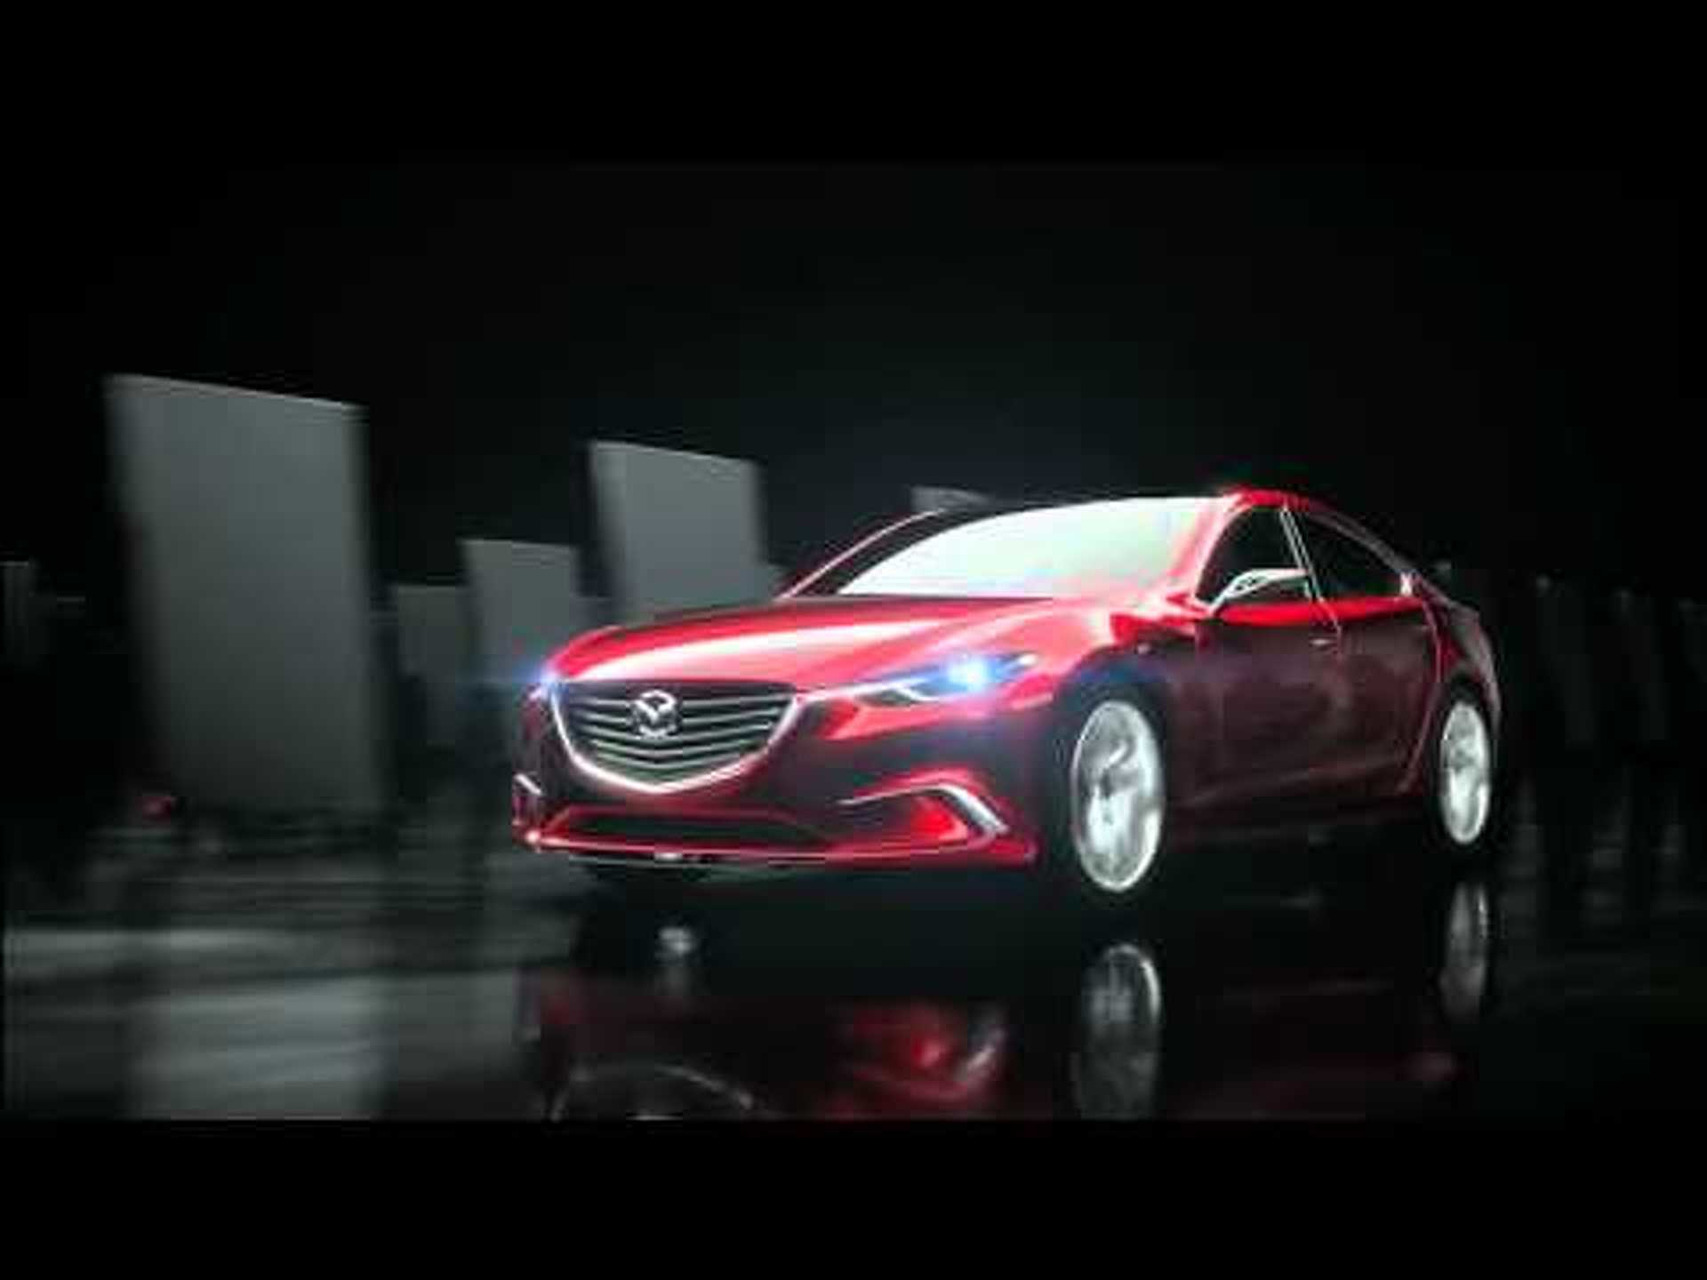 2011 Mazda Takeri Concept World Premiere